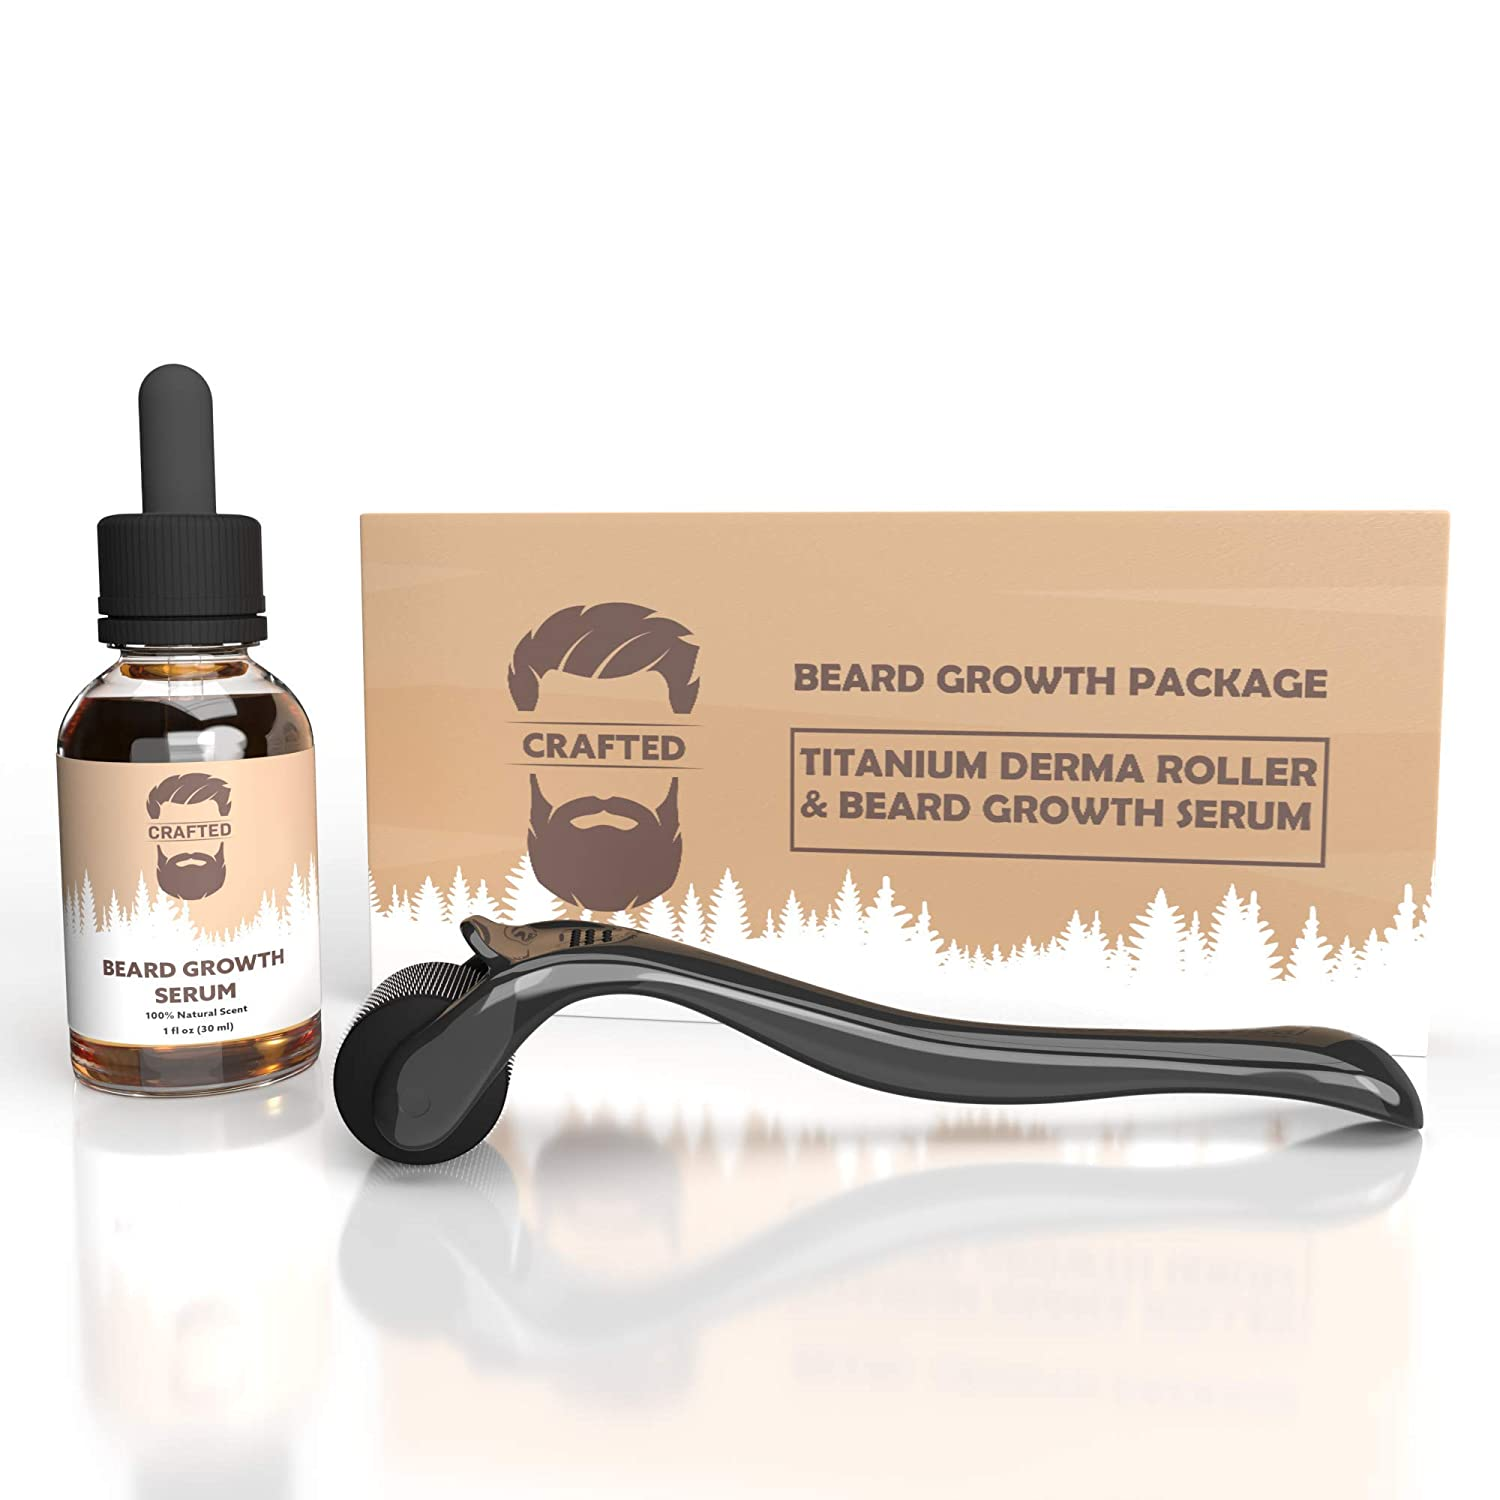 Beard Growth Kit - Derma Roller for Beard Growth and Beard Growth Serum